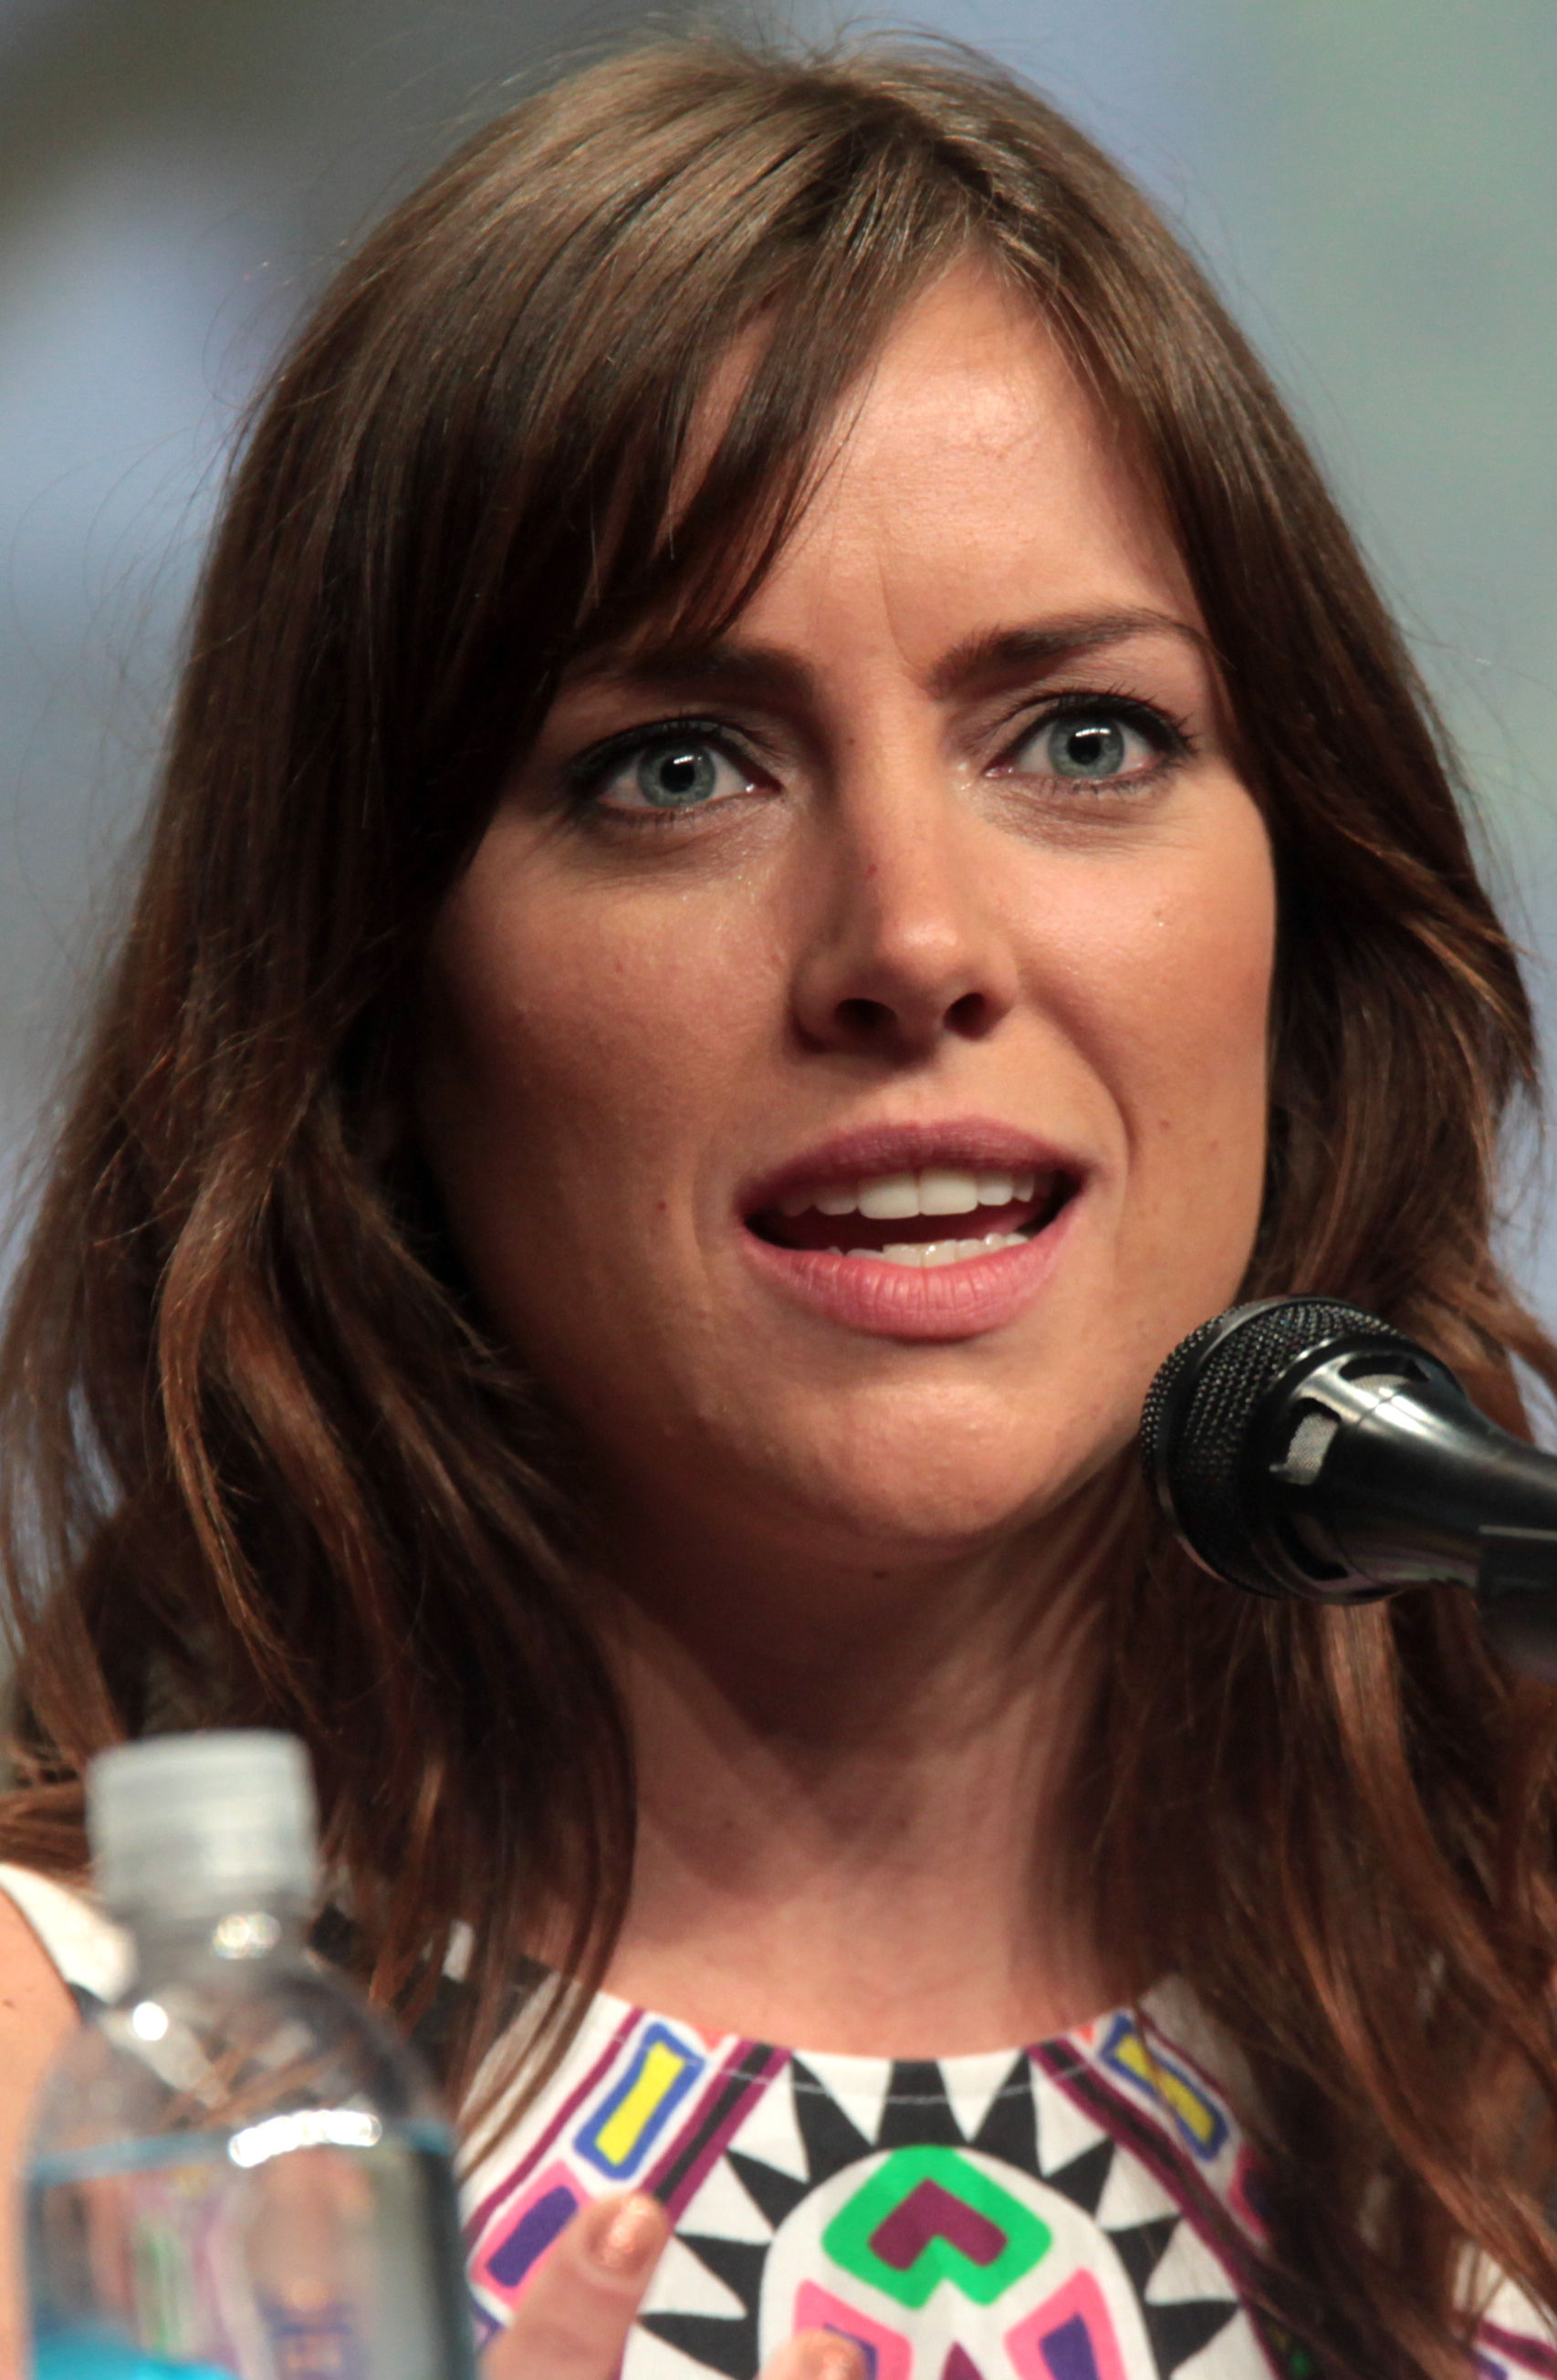 Photo of Jessica Stroup: American actress